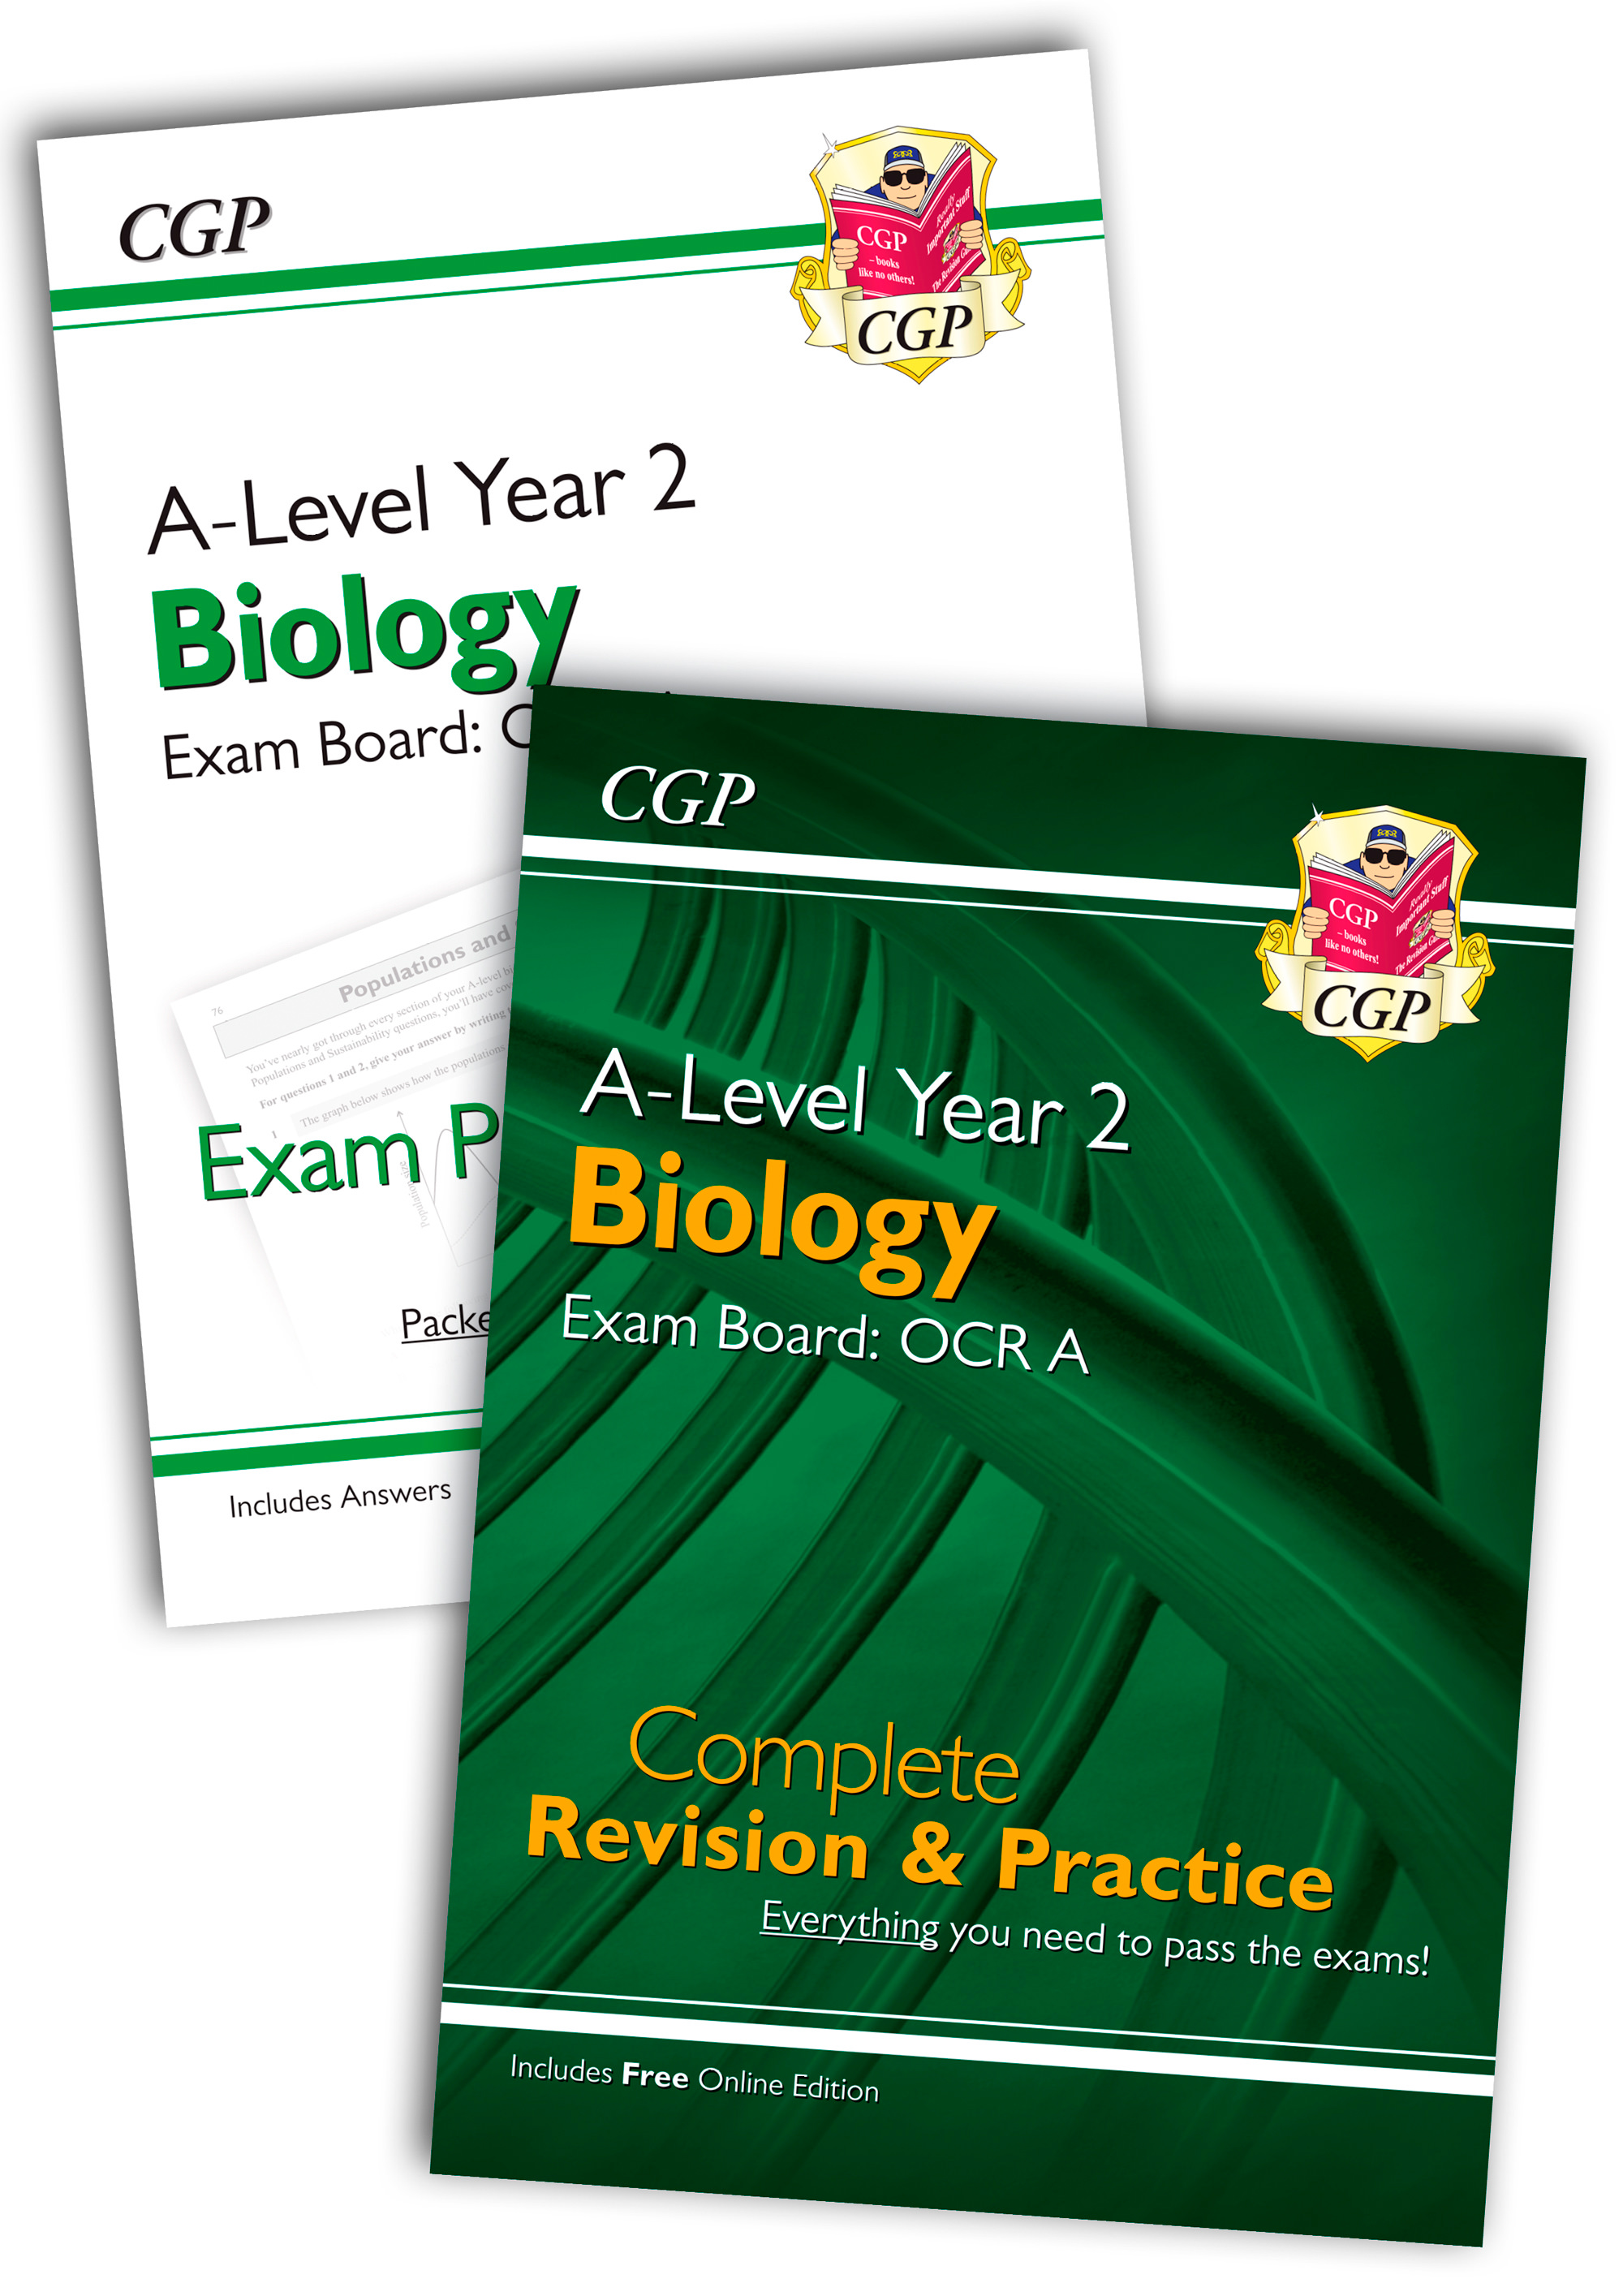 BRARQB61 - New Complete Revision and Exam Practice A-Level Biology Bundle: OCR A Year 2